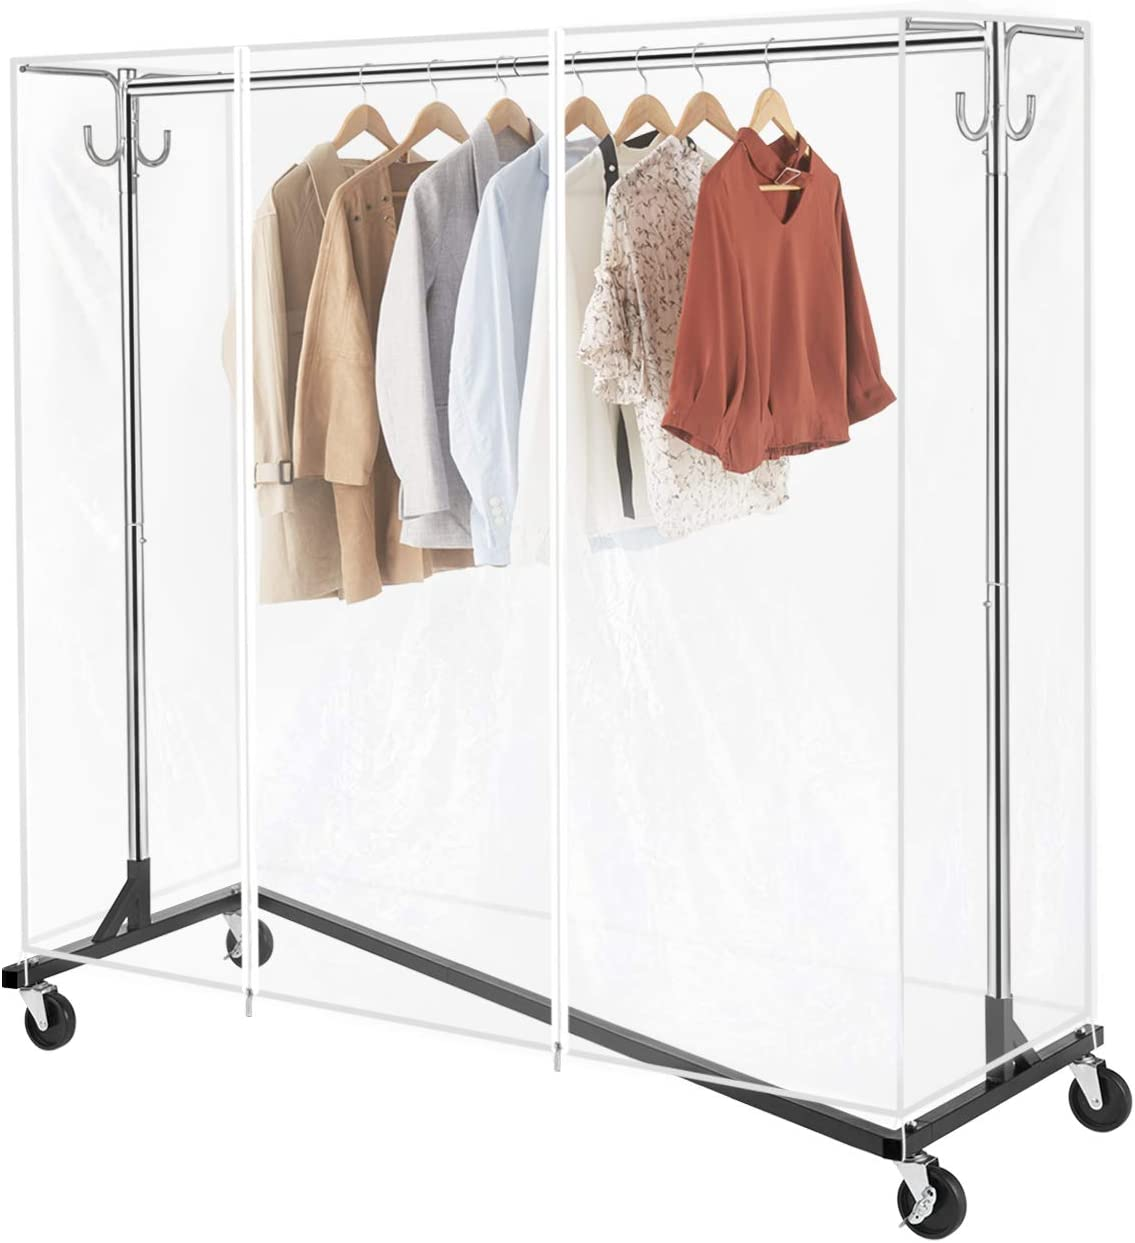 National products GREENSTELL Clothes Rack with Cover Award Pi Tube Industrial Bracket